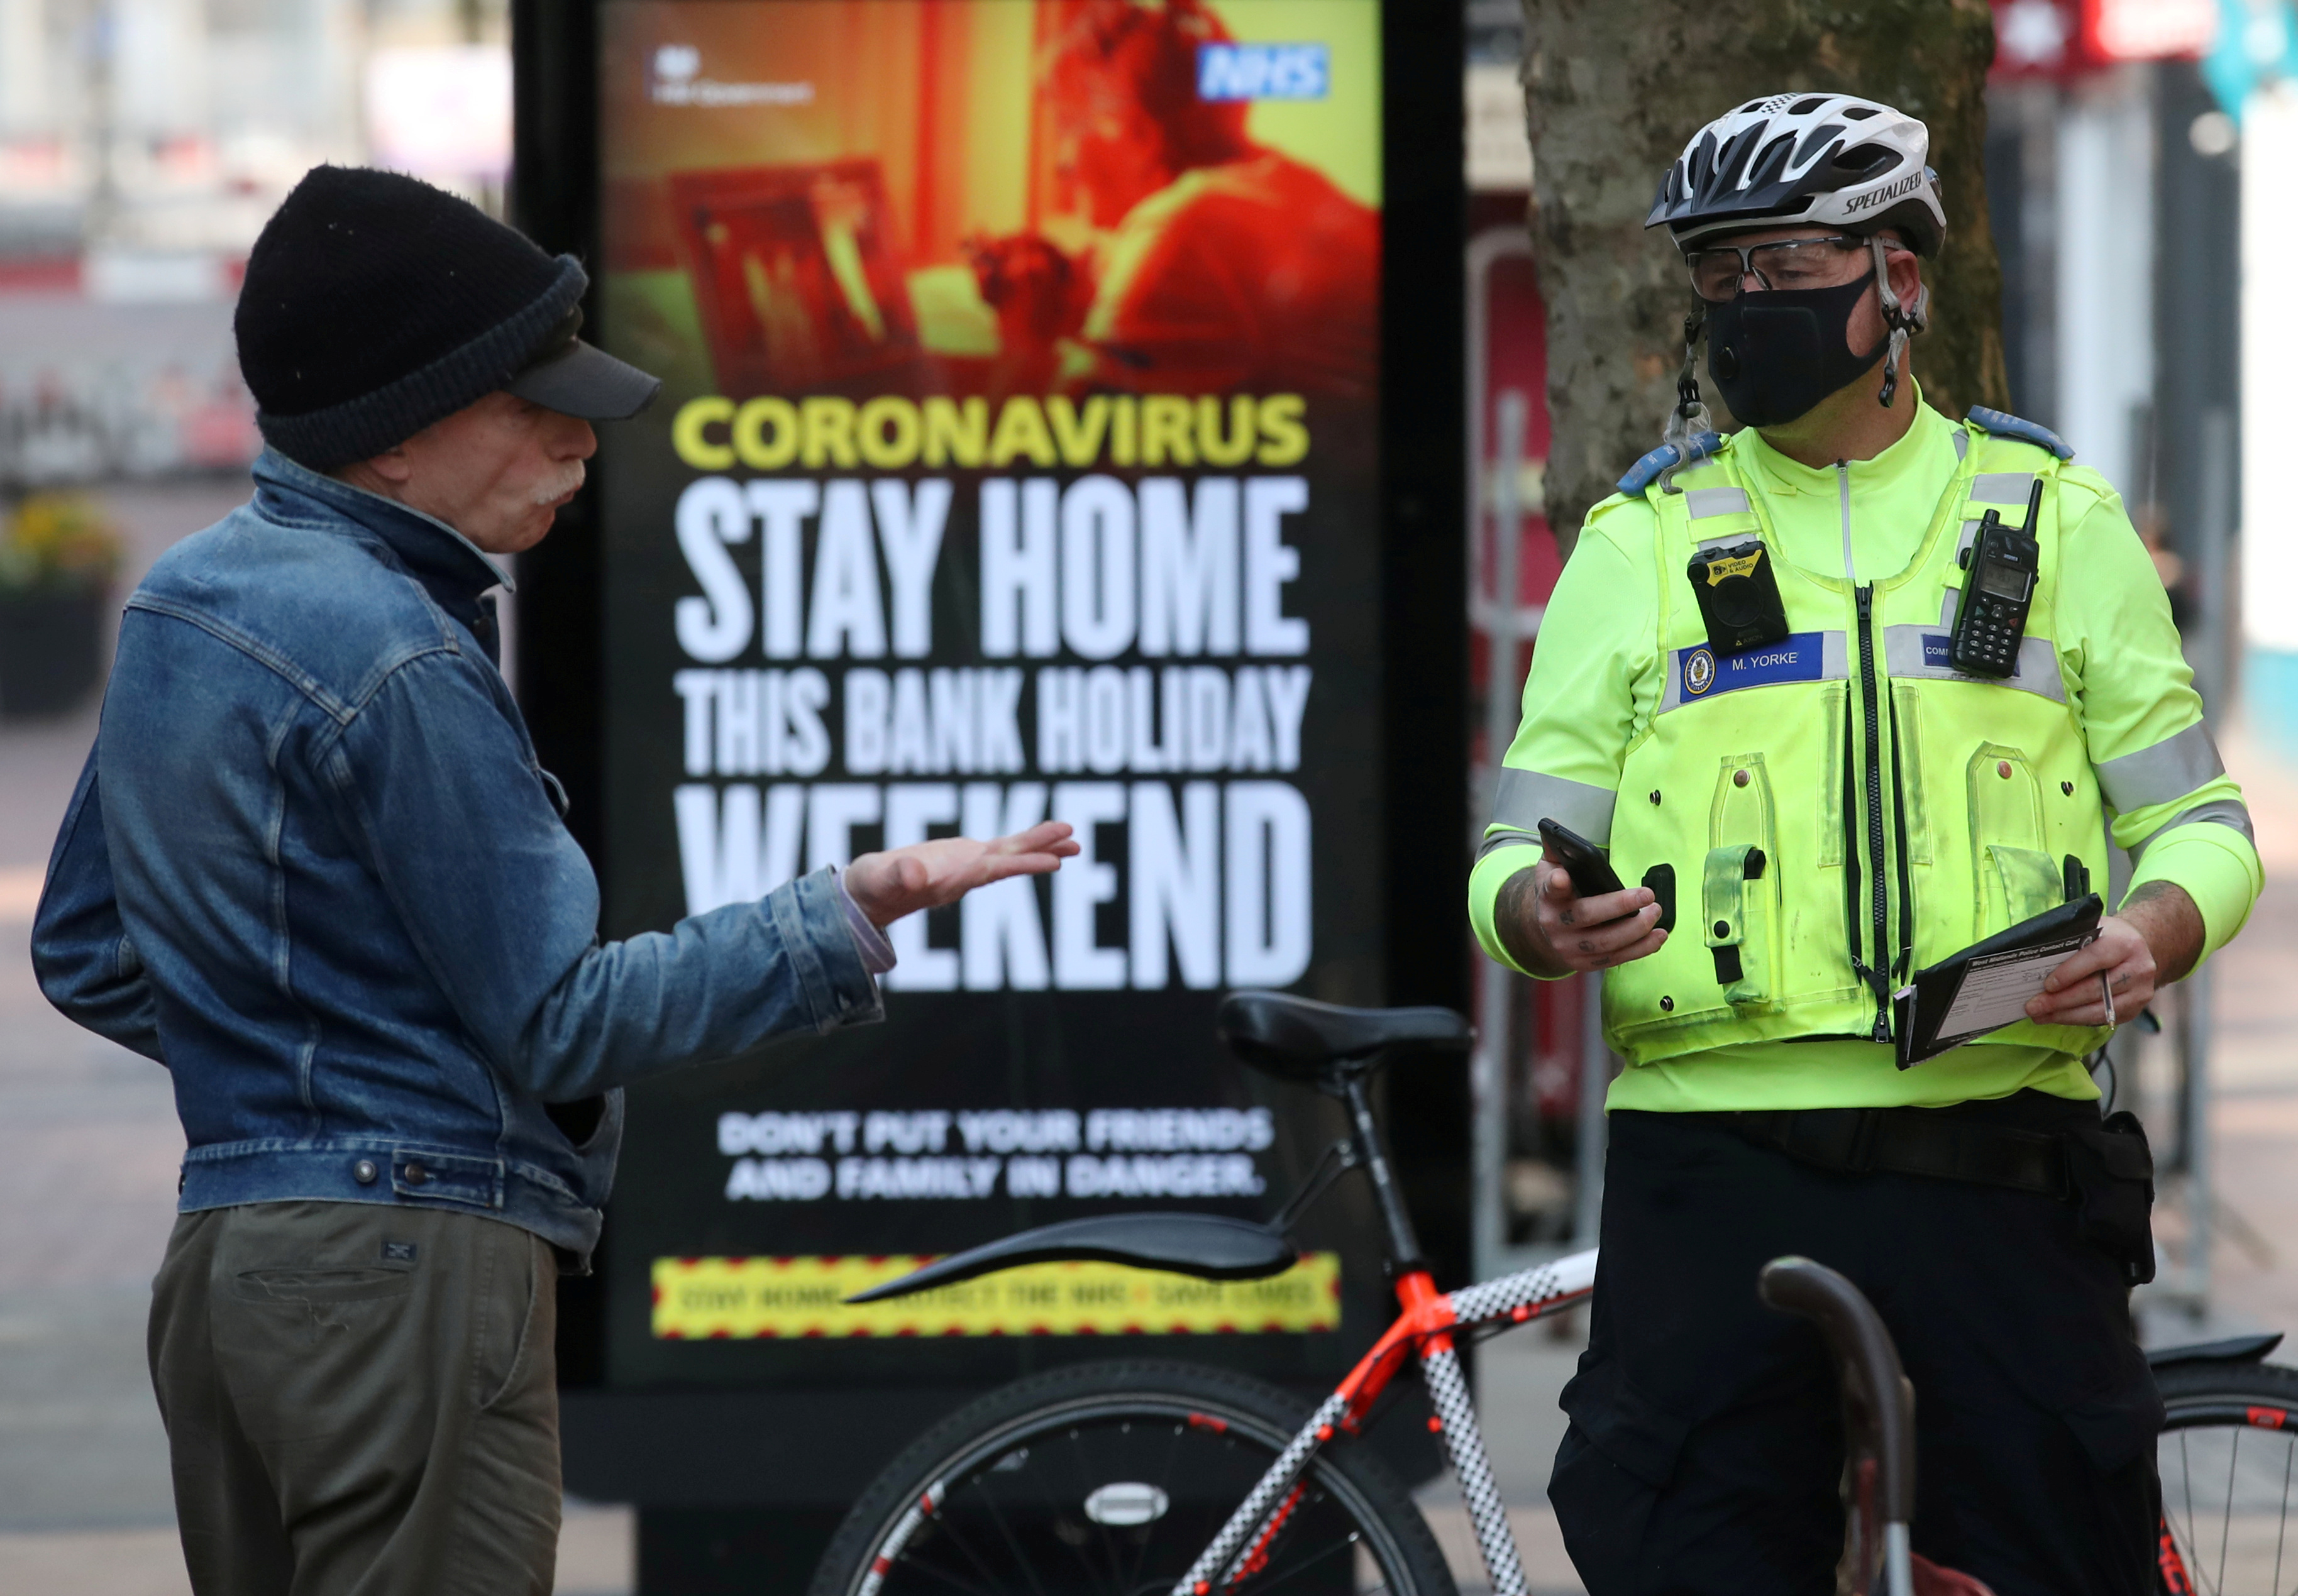 A police officer wearing a protective face mask tells a person to leave New Street, Birmingham as the spread of the coronavirus disease (COVID-19) continues, in Birmingham, Britain, on April 9, 2020. Photo: Reuters